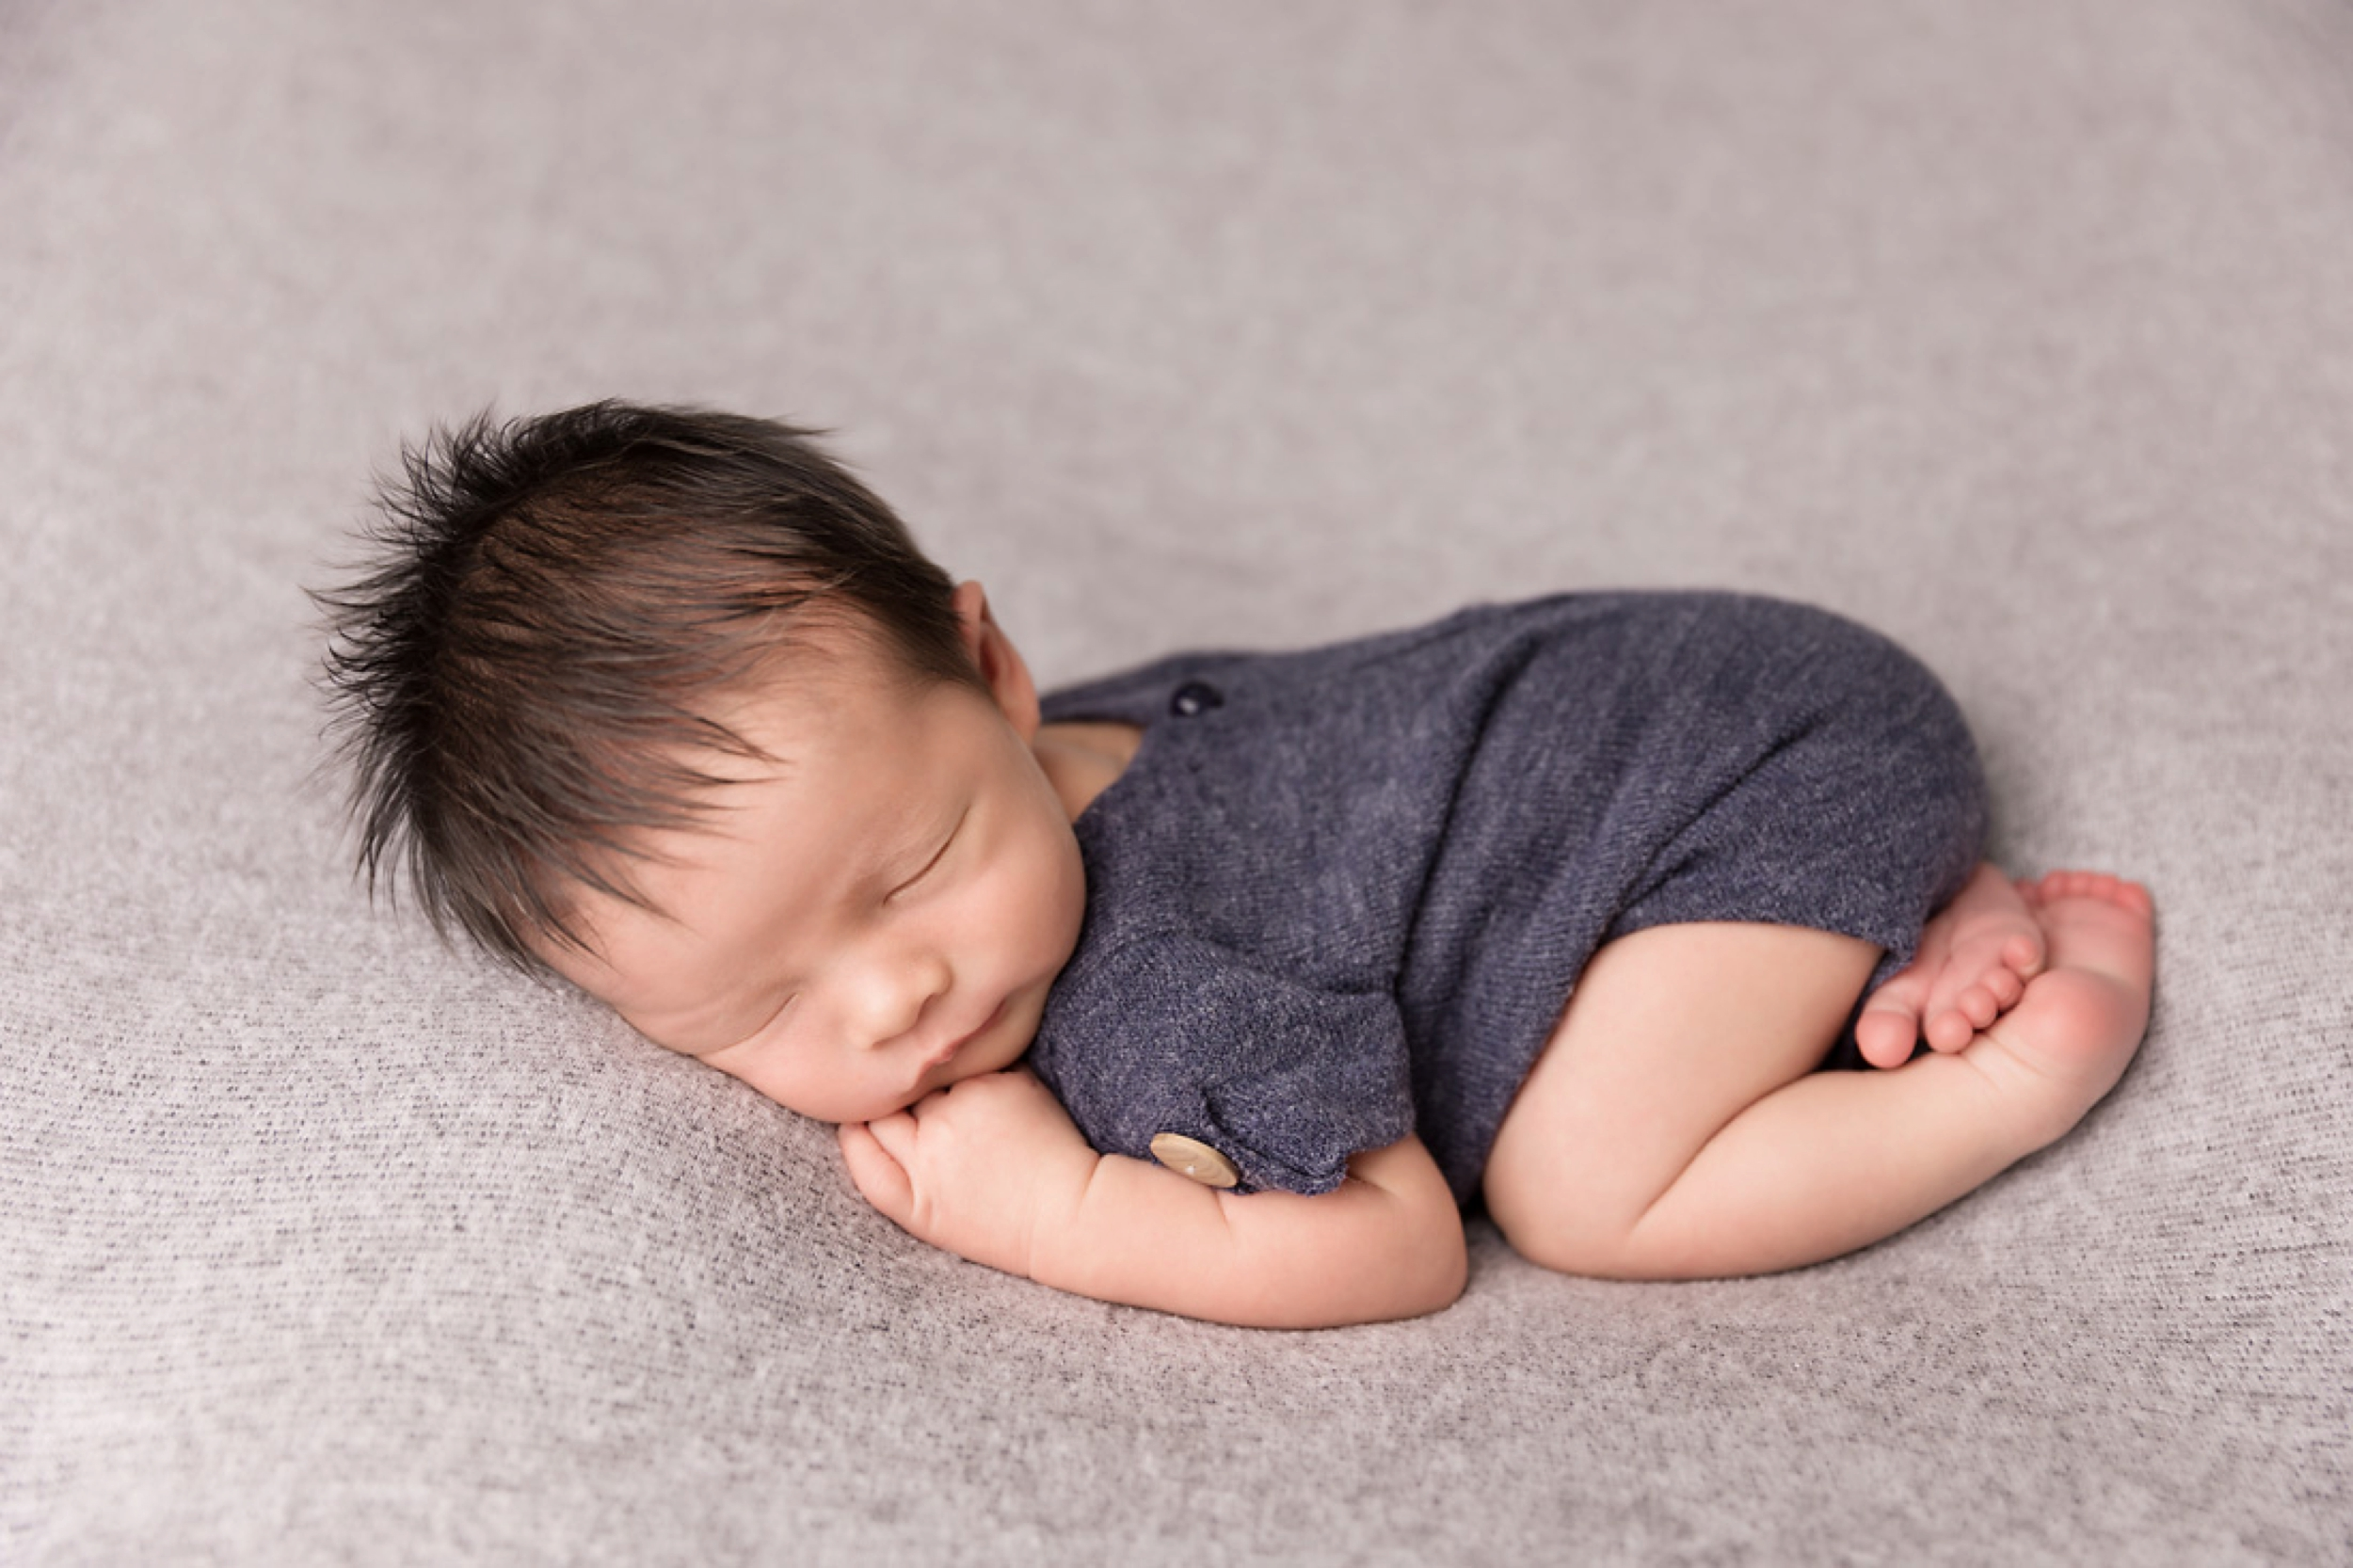 Newborn-Studio-Session-Jessica-Doffing-Photography_0002.jpg